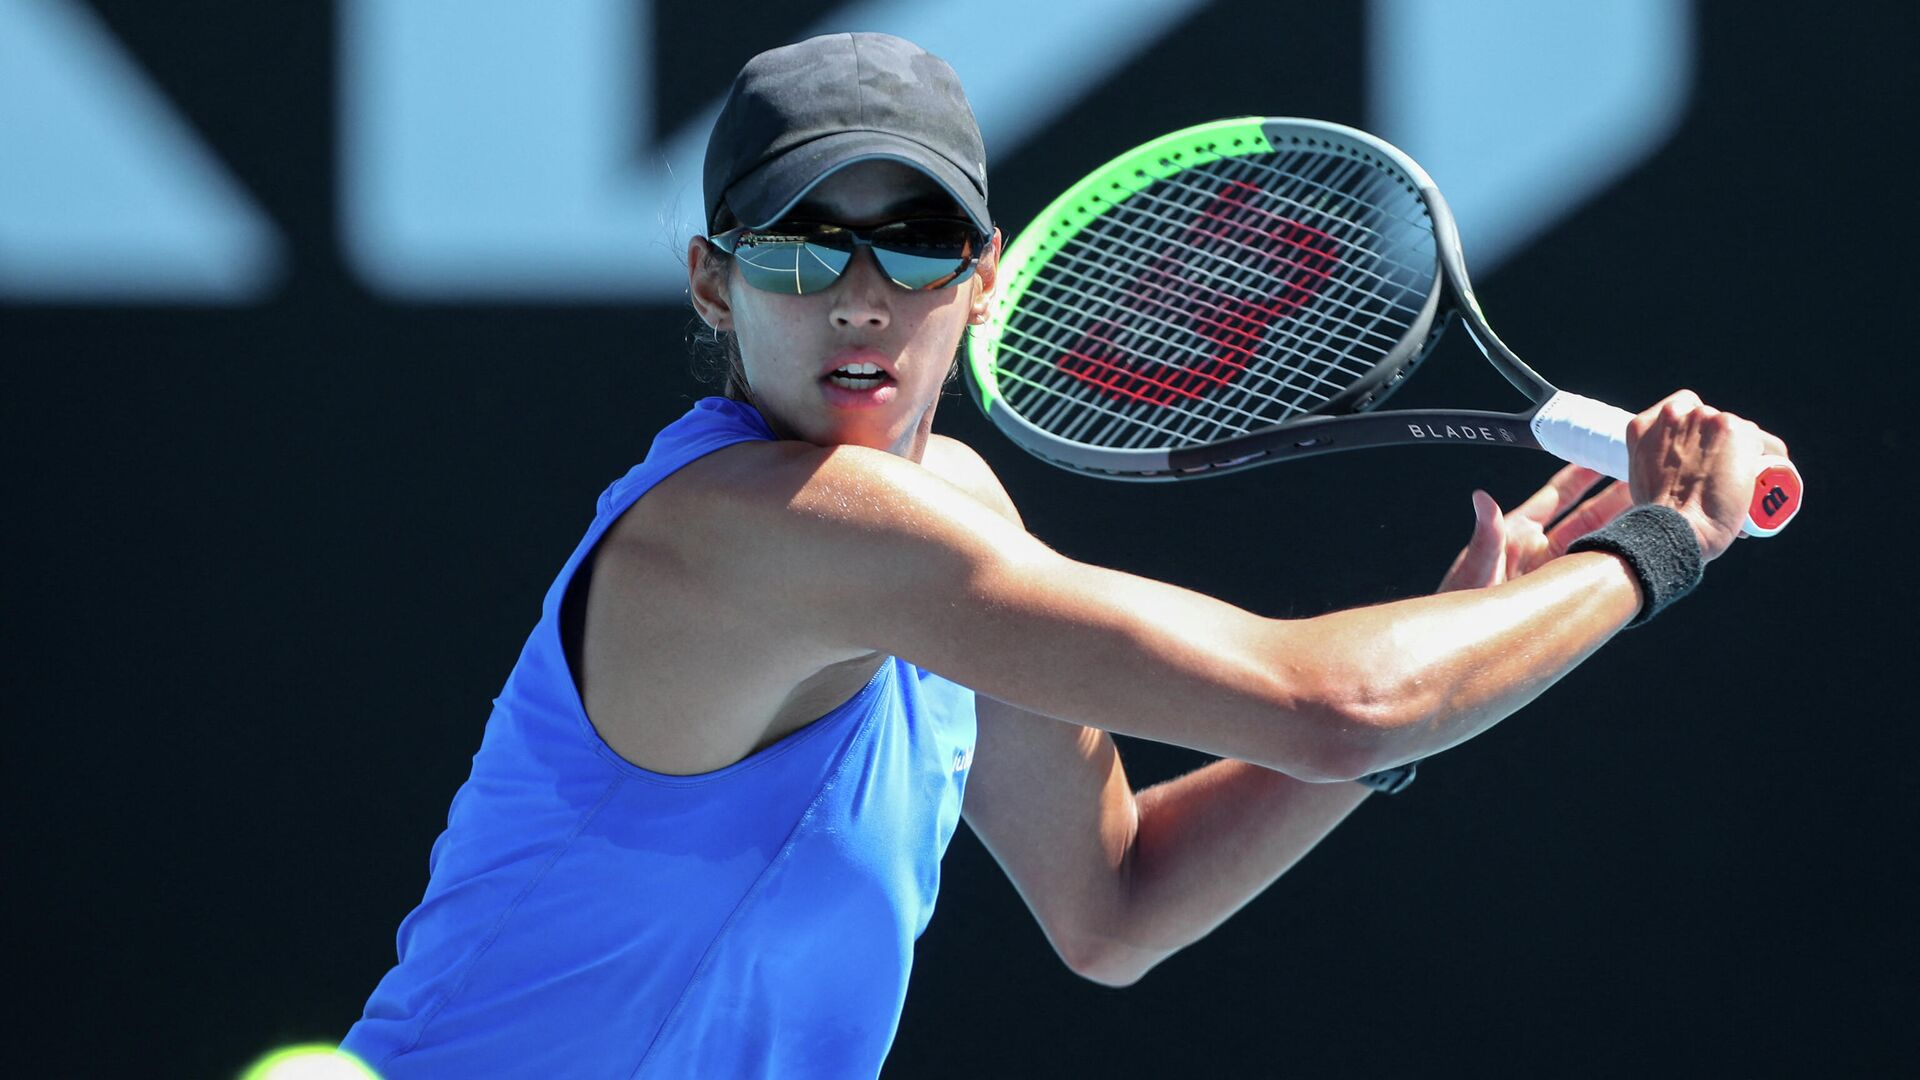 Australia's Astra Sharma hits a return against Japan's Nao Hibino during their women's singles match on day two of the Australian Open tennis tournament in Melbourne on February 9, 2021. (Photo by Brandon MALONE / AFP) / -- IMAGE RESTRICTED TO EDITORIAL USE - STRICTLY NO COMMERCIAL USE -- - РИА Новости, 1920, 18.04.2021